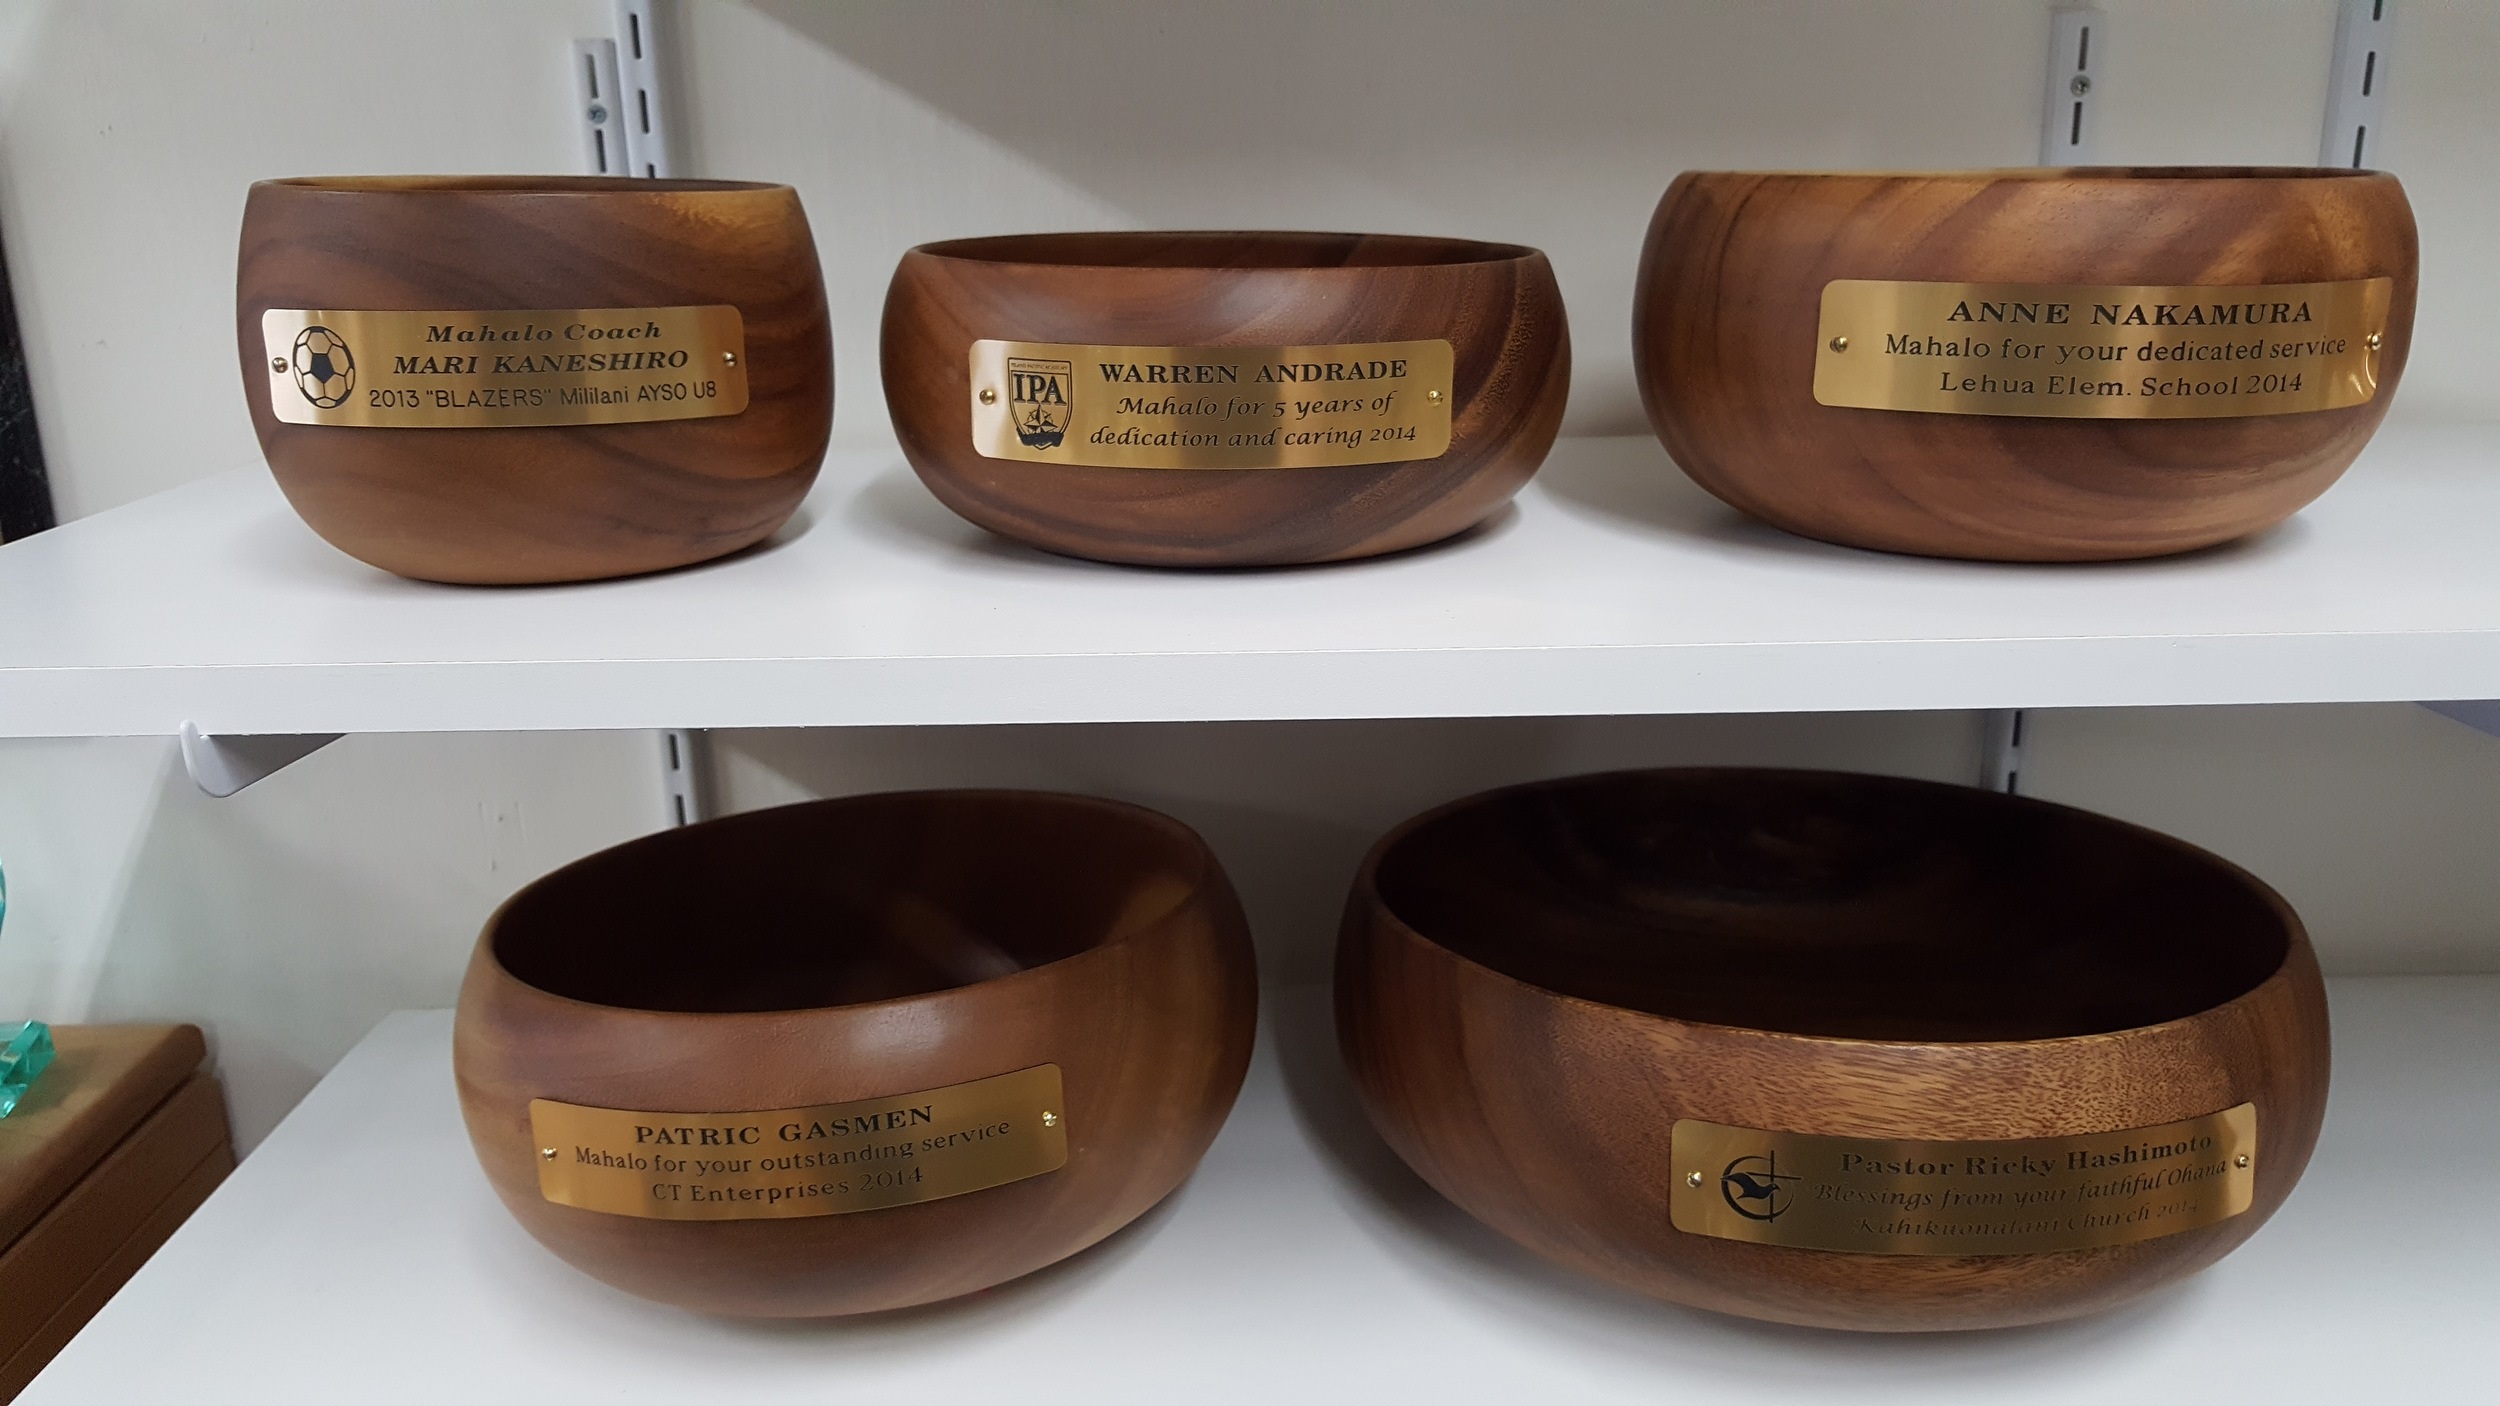 Monkeypod Bowls  4x6 - 26.00, 3x8 - 29.00, 4x8 - 39.00, 4x10 - 49.00, 4x12 - 59.00 Price includes 3 lines of engraving & stock emblem (soccer ball etc)  Add 3.00 for Custom logo.